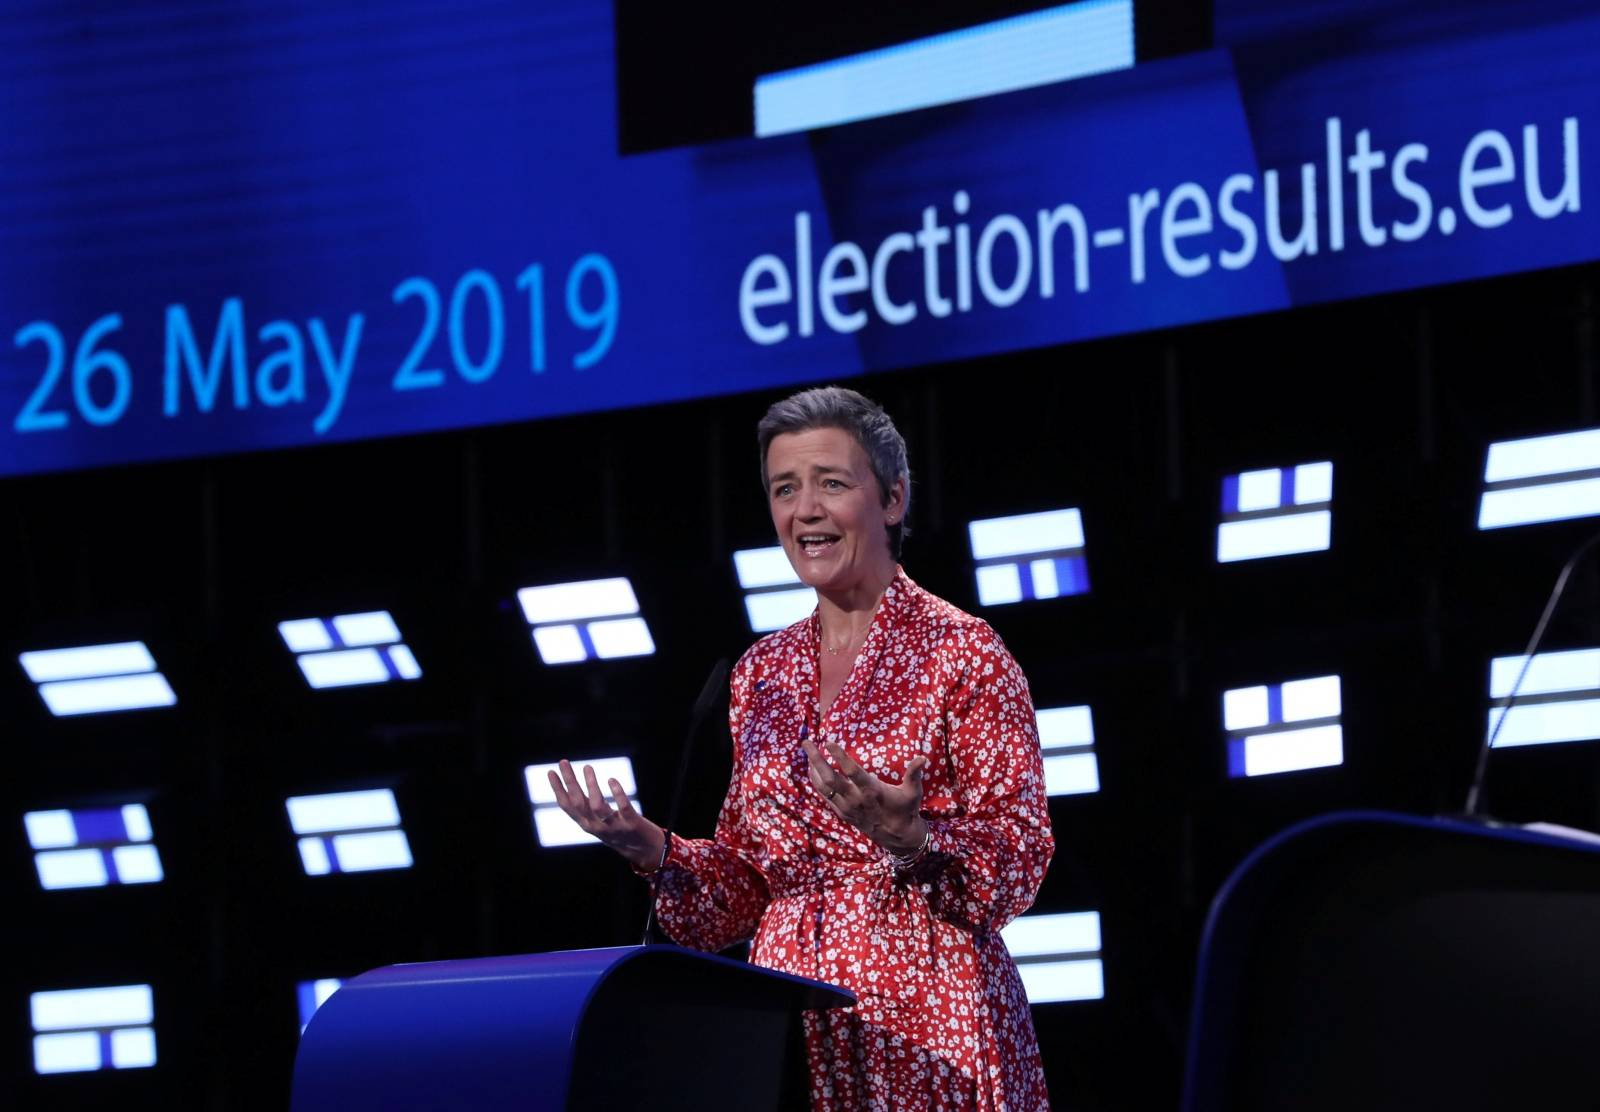 EU Competition Commissioner Margrethe Vestager speaks during the final estimation of the results of the European Parliament election in Brussels